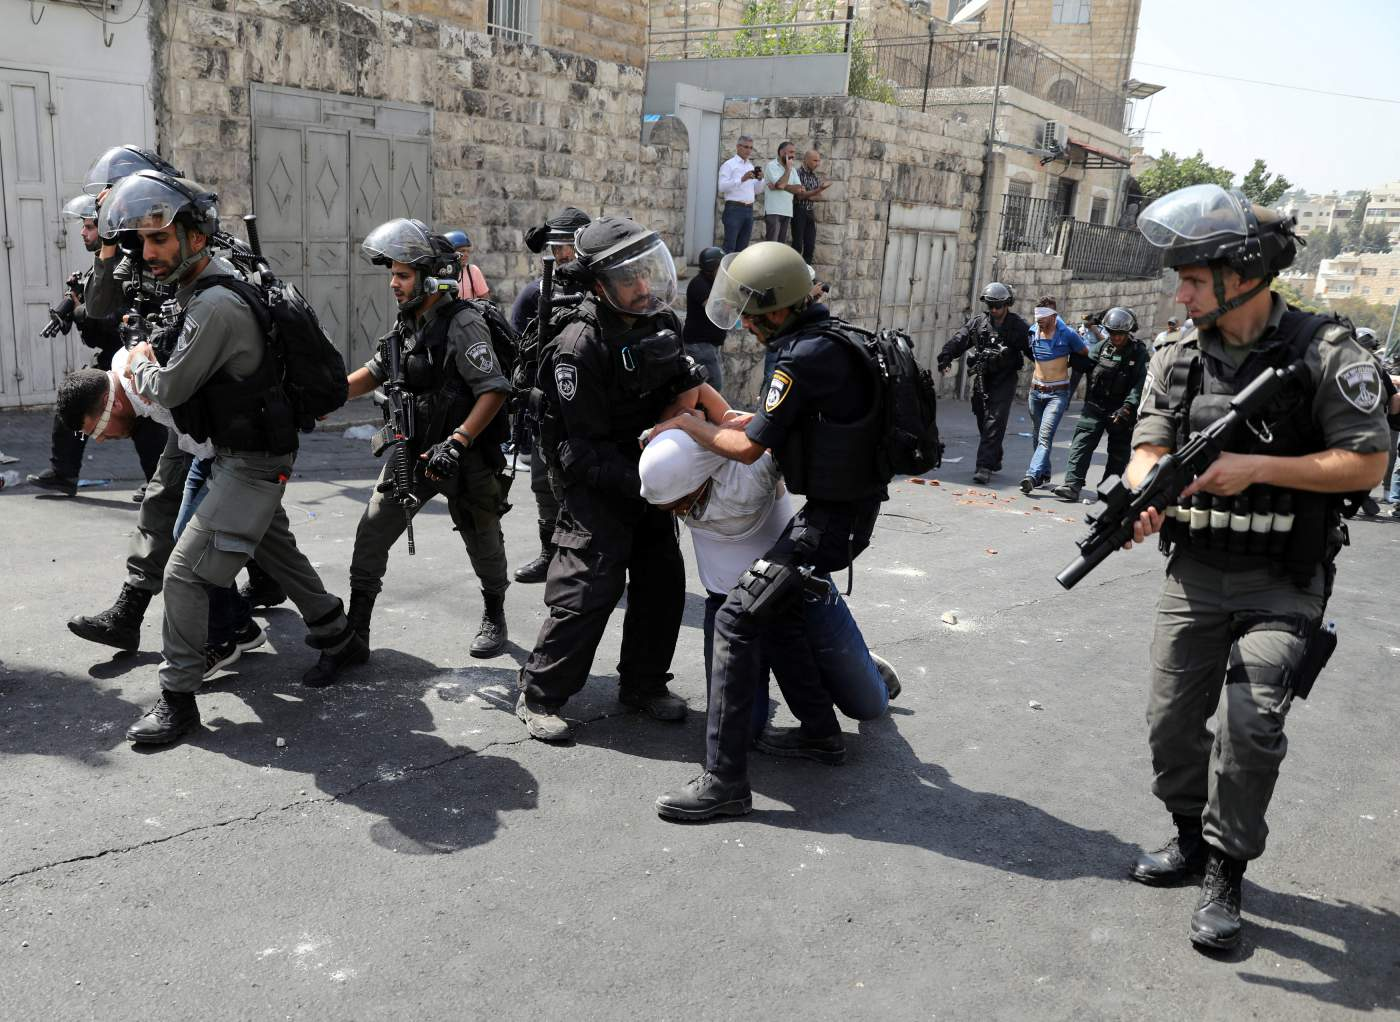 Israeli security forces arrest Palestinian men following clashes outside Jerusalem's Old city, July 21, 2017. Credit: Reuters/Ammar Awad